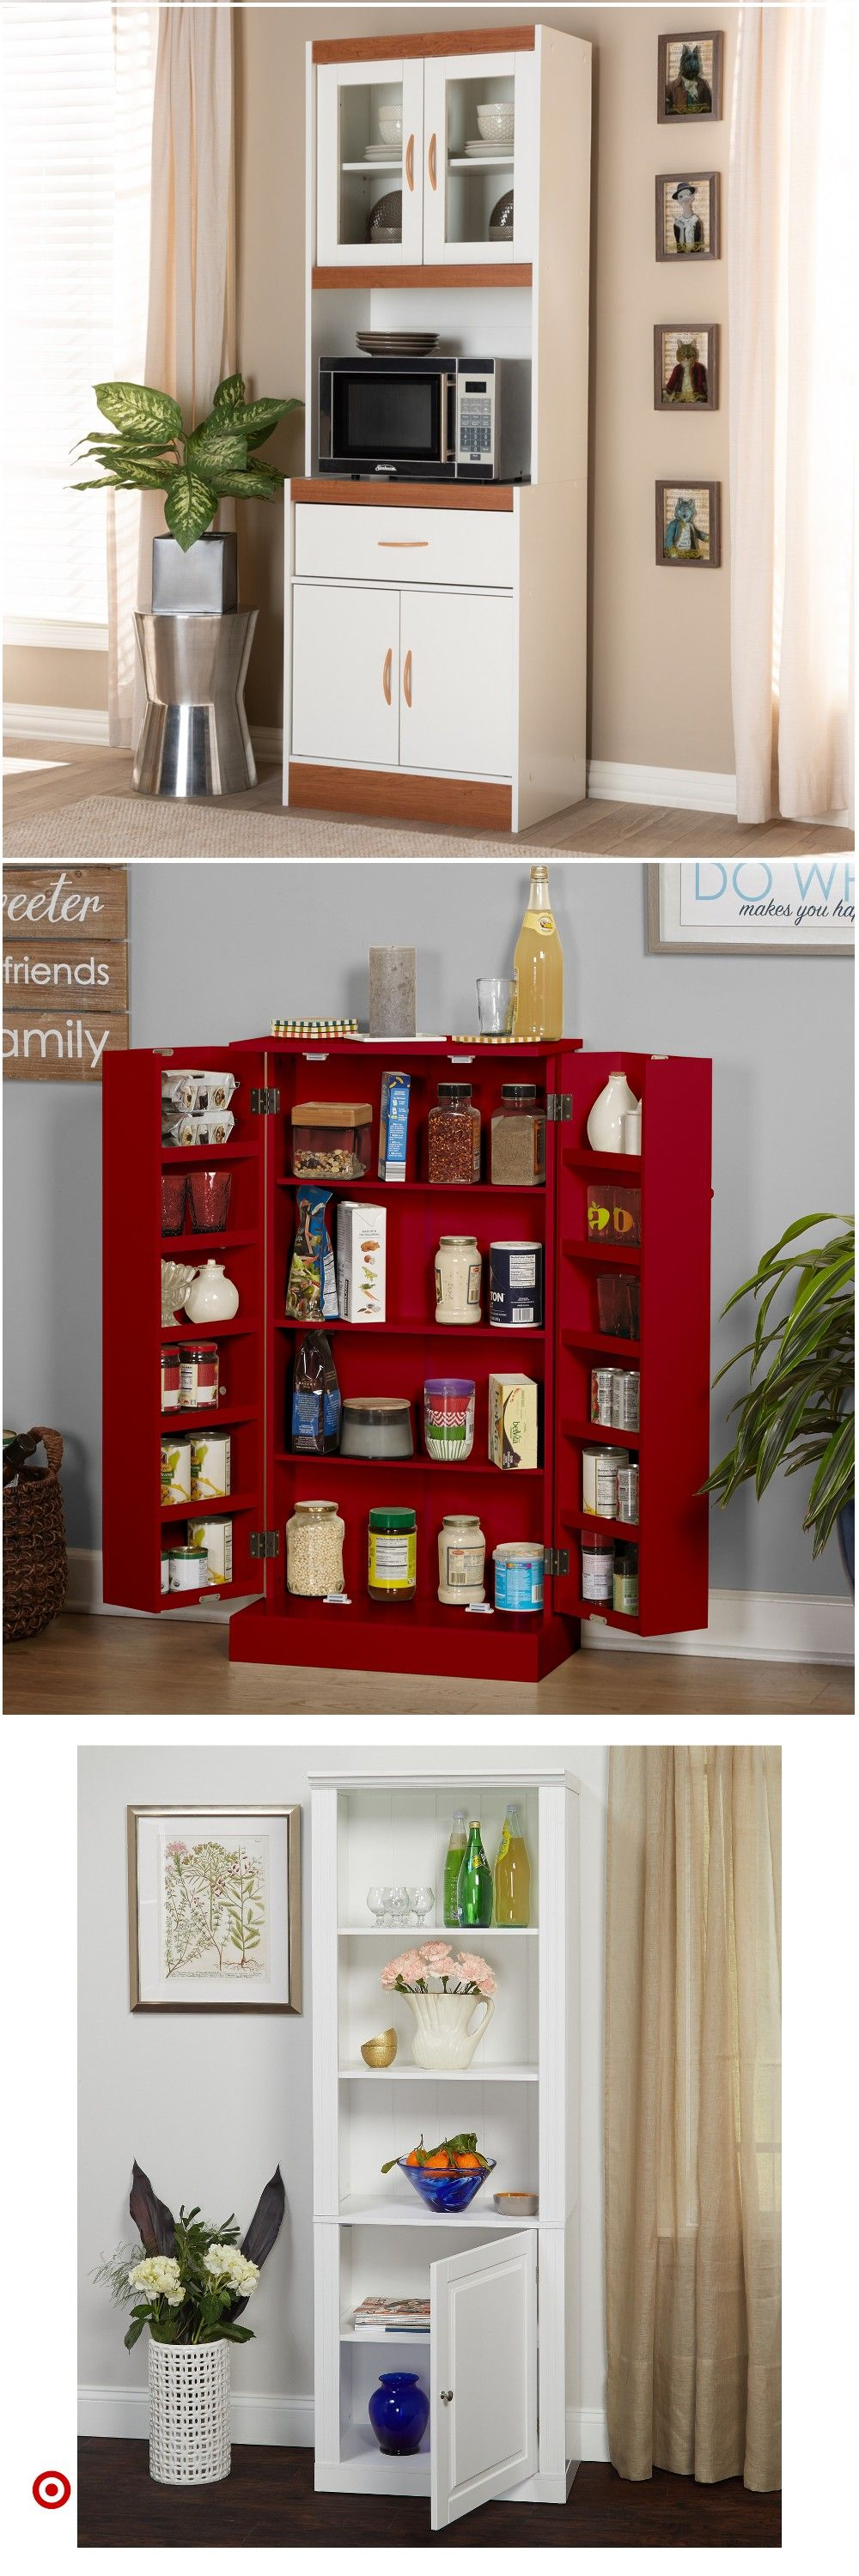 Shop Target For Kitchen Storage Pantry You Will Love At Great Low Prices Free Shipping On Orders Of 35 Or Free Kitchen Organization Home Remodeling Home